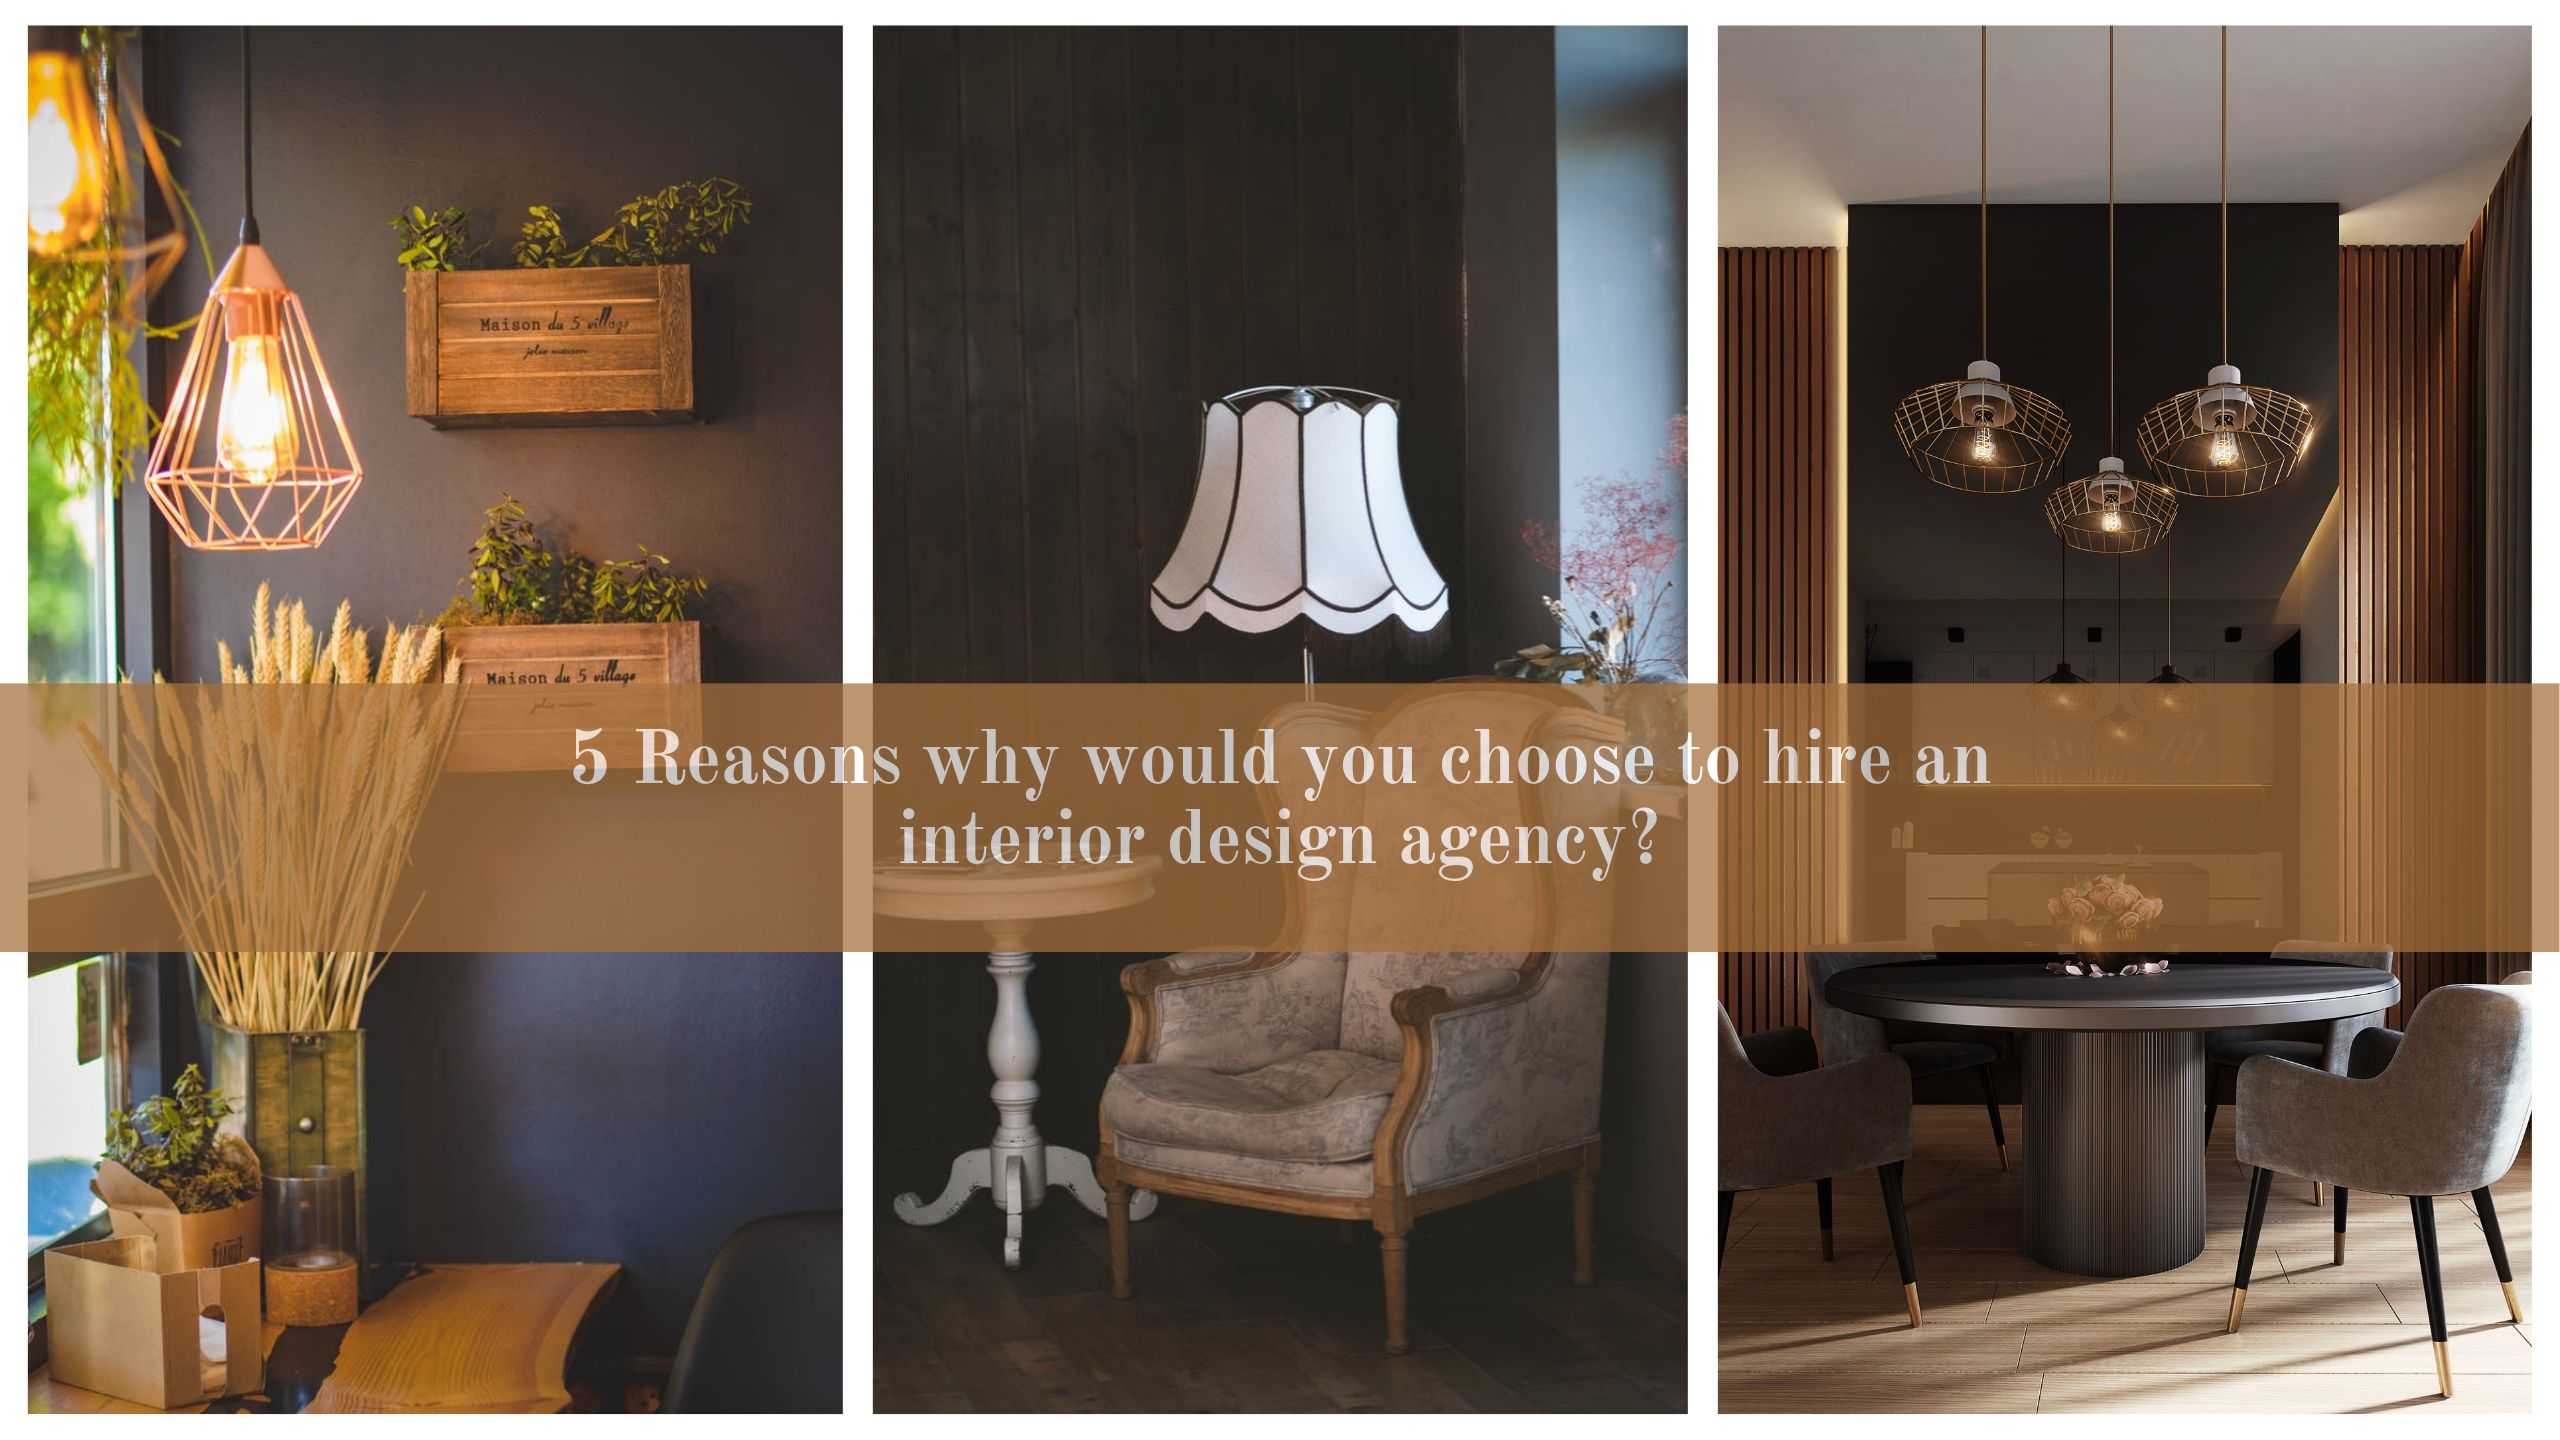 5 Reasons why would you choose to hire an interior design agency?